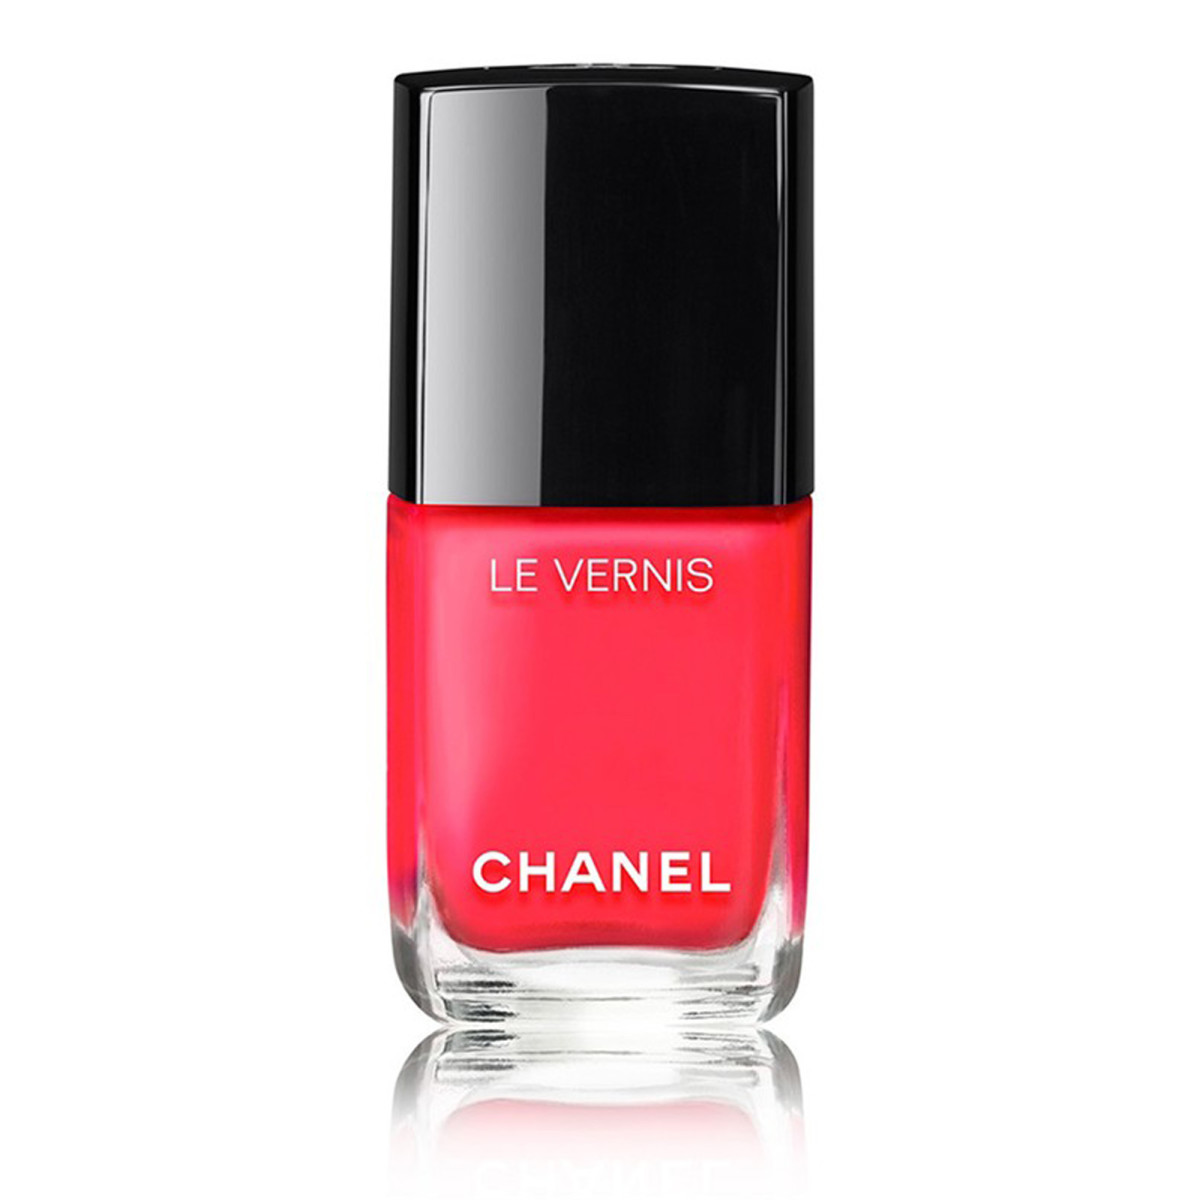 Chanel Le Vernis Nail Colour in 524 Turban